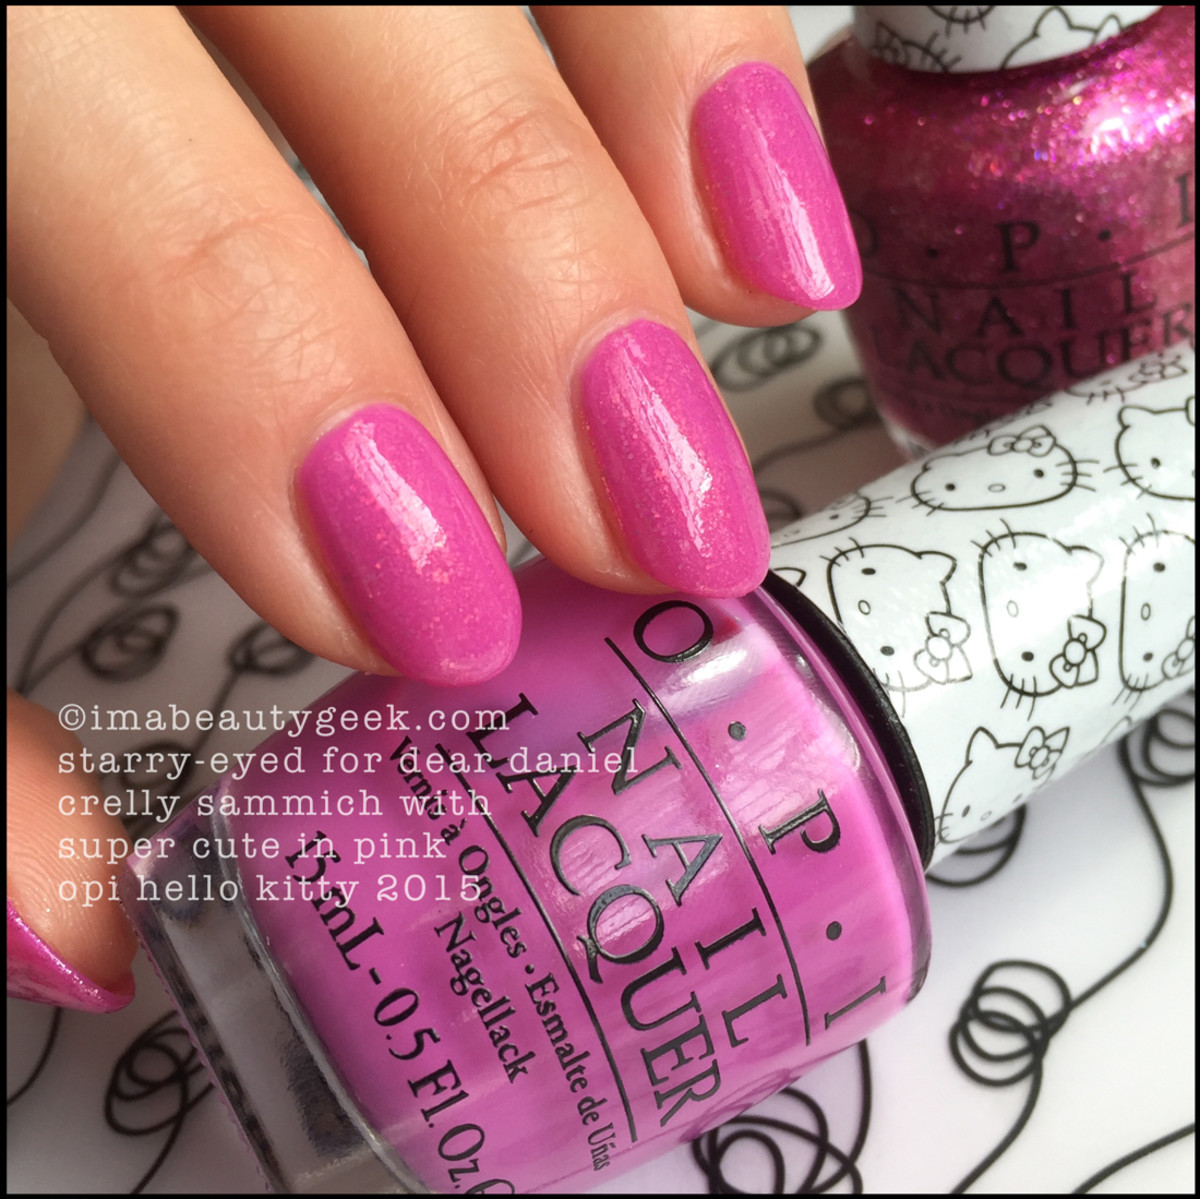 OPI Hello Kitty Swatches_OPI Super Cute in Pink Sandwich